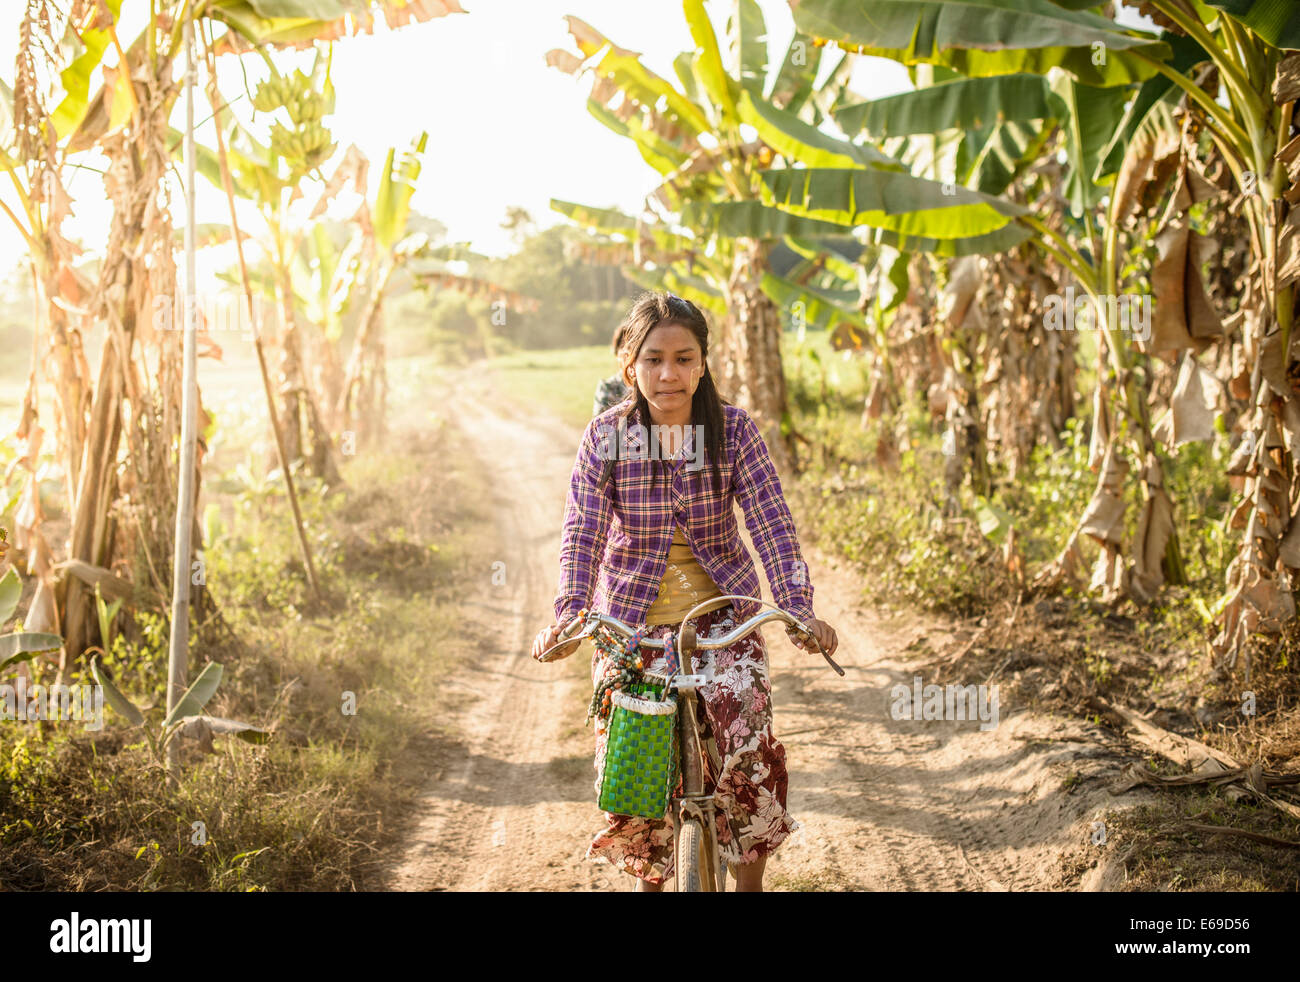 Asian woman riding bicycle on rural road Photo Stock